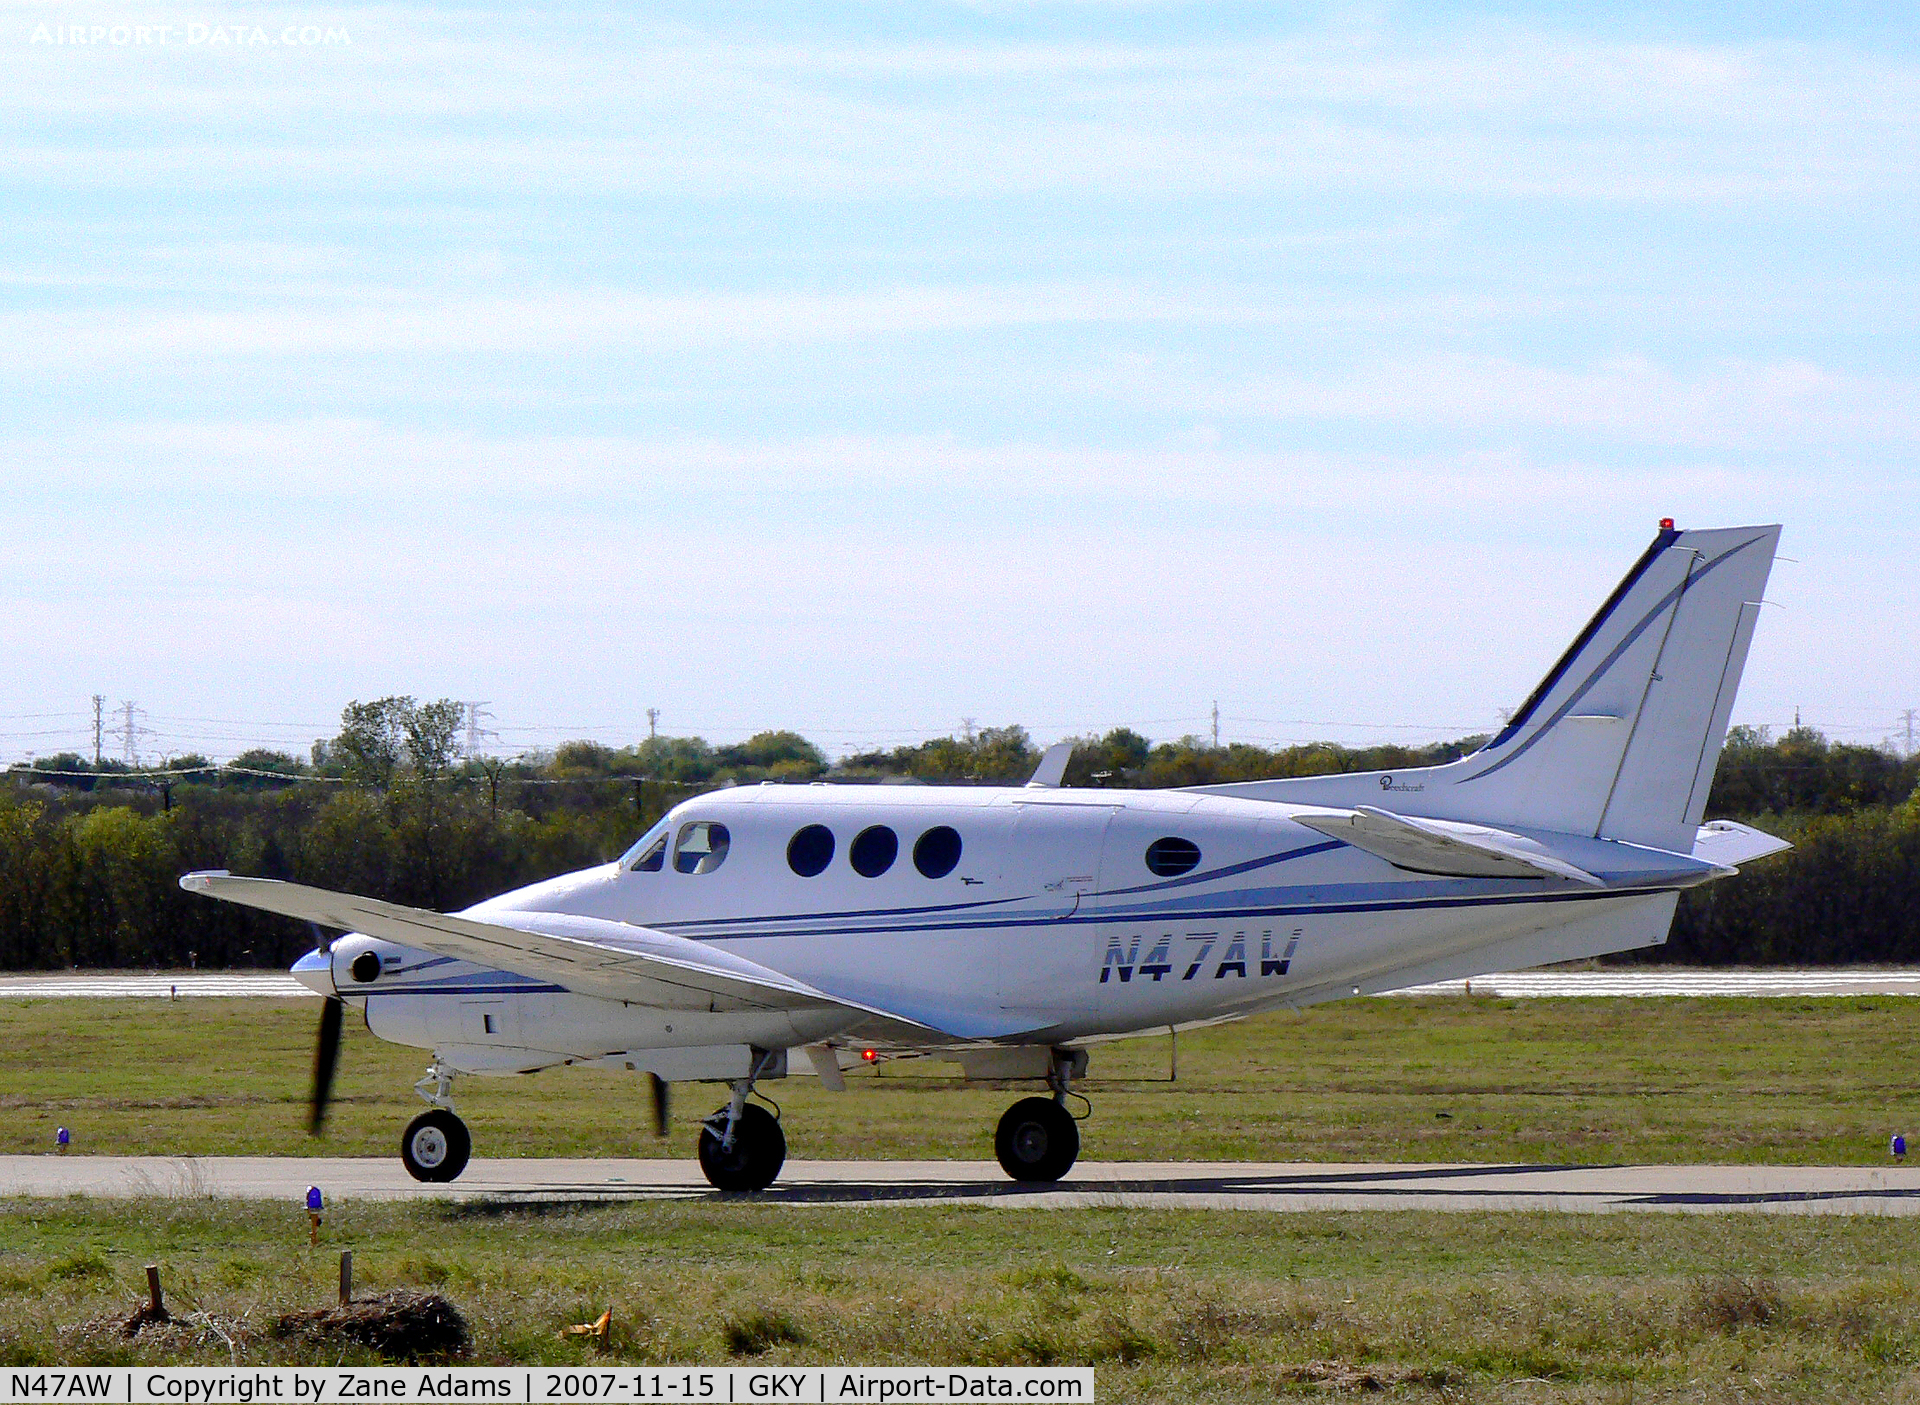 N47AW, 1975 Beech E-90 King Air C/N LW-130, Taxi out for takeoff at Arlington